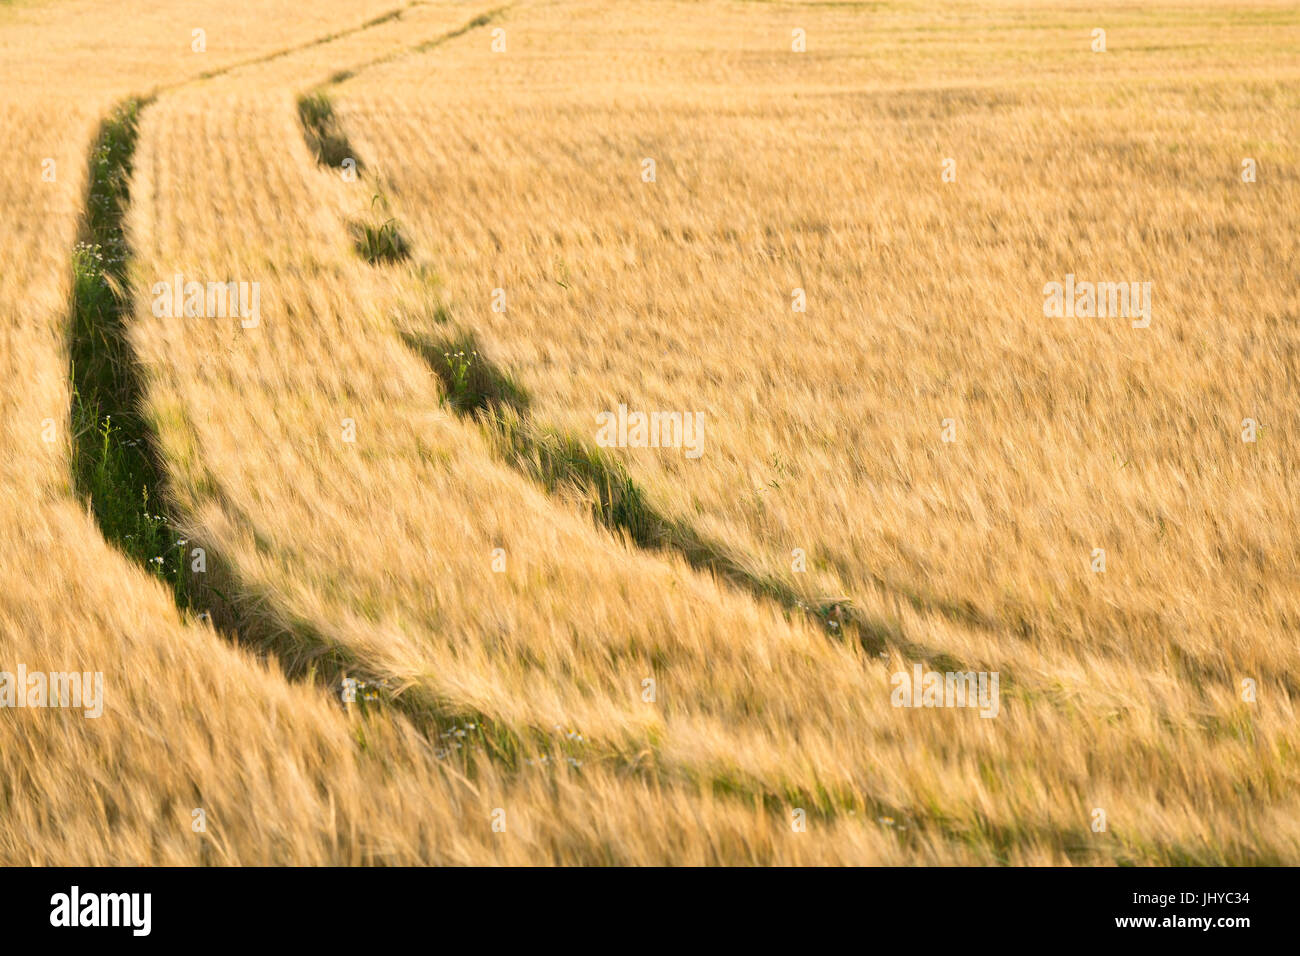 Tracks in the summery grain-field - tracks in the summerly corn field, Spuren im sommerlichen Getreidefeld - Tracks - Stock Image